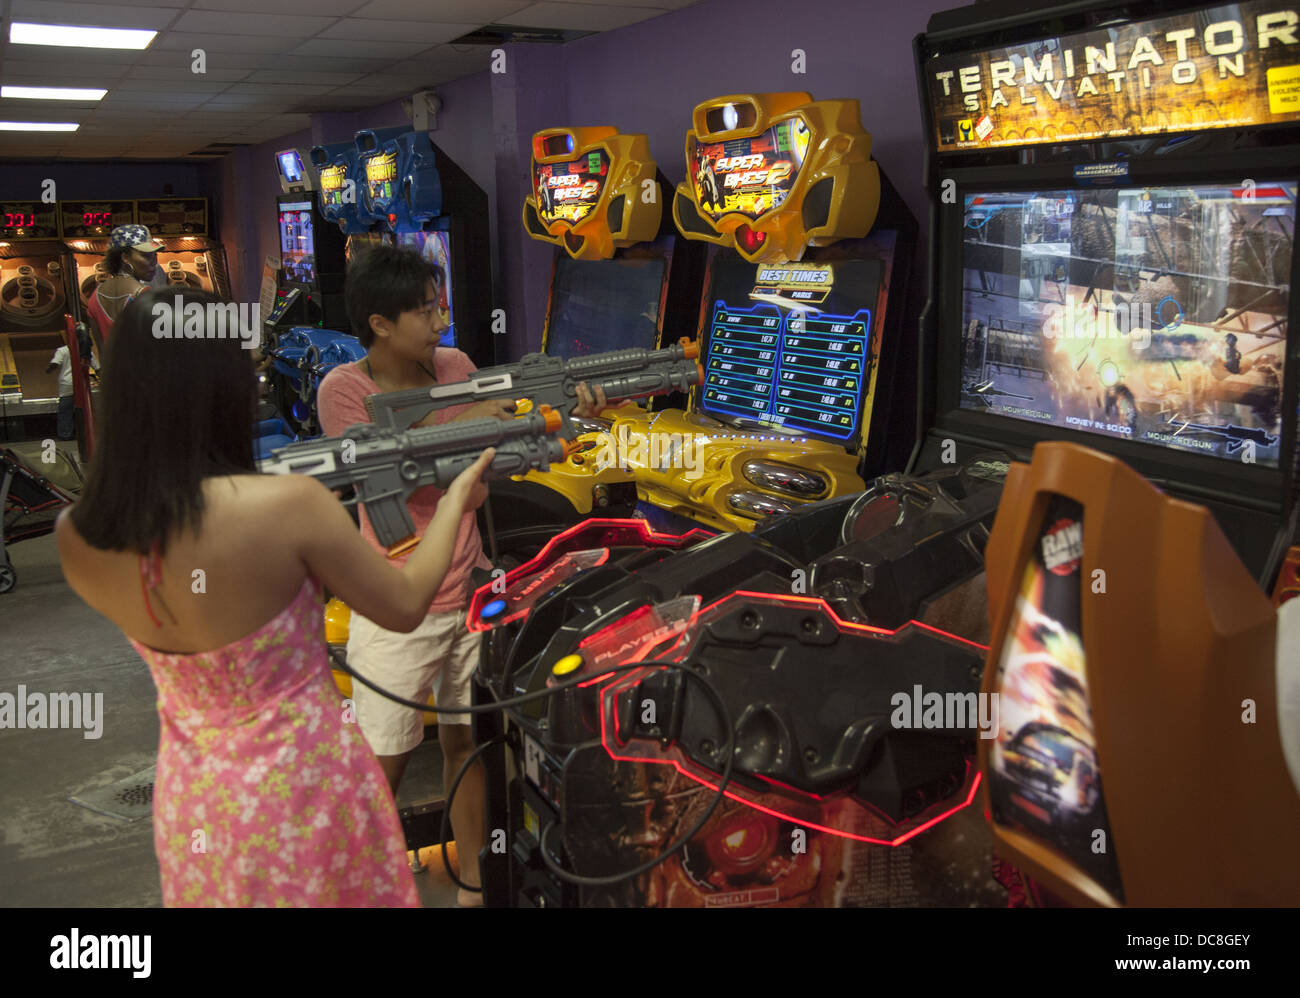 Kids always are in battle mode with the violent games at a video arcade in Coney Island, Brooklyn, NY. Stock Photo